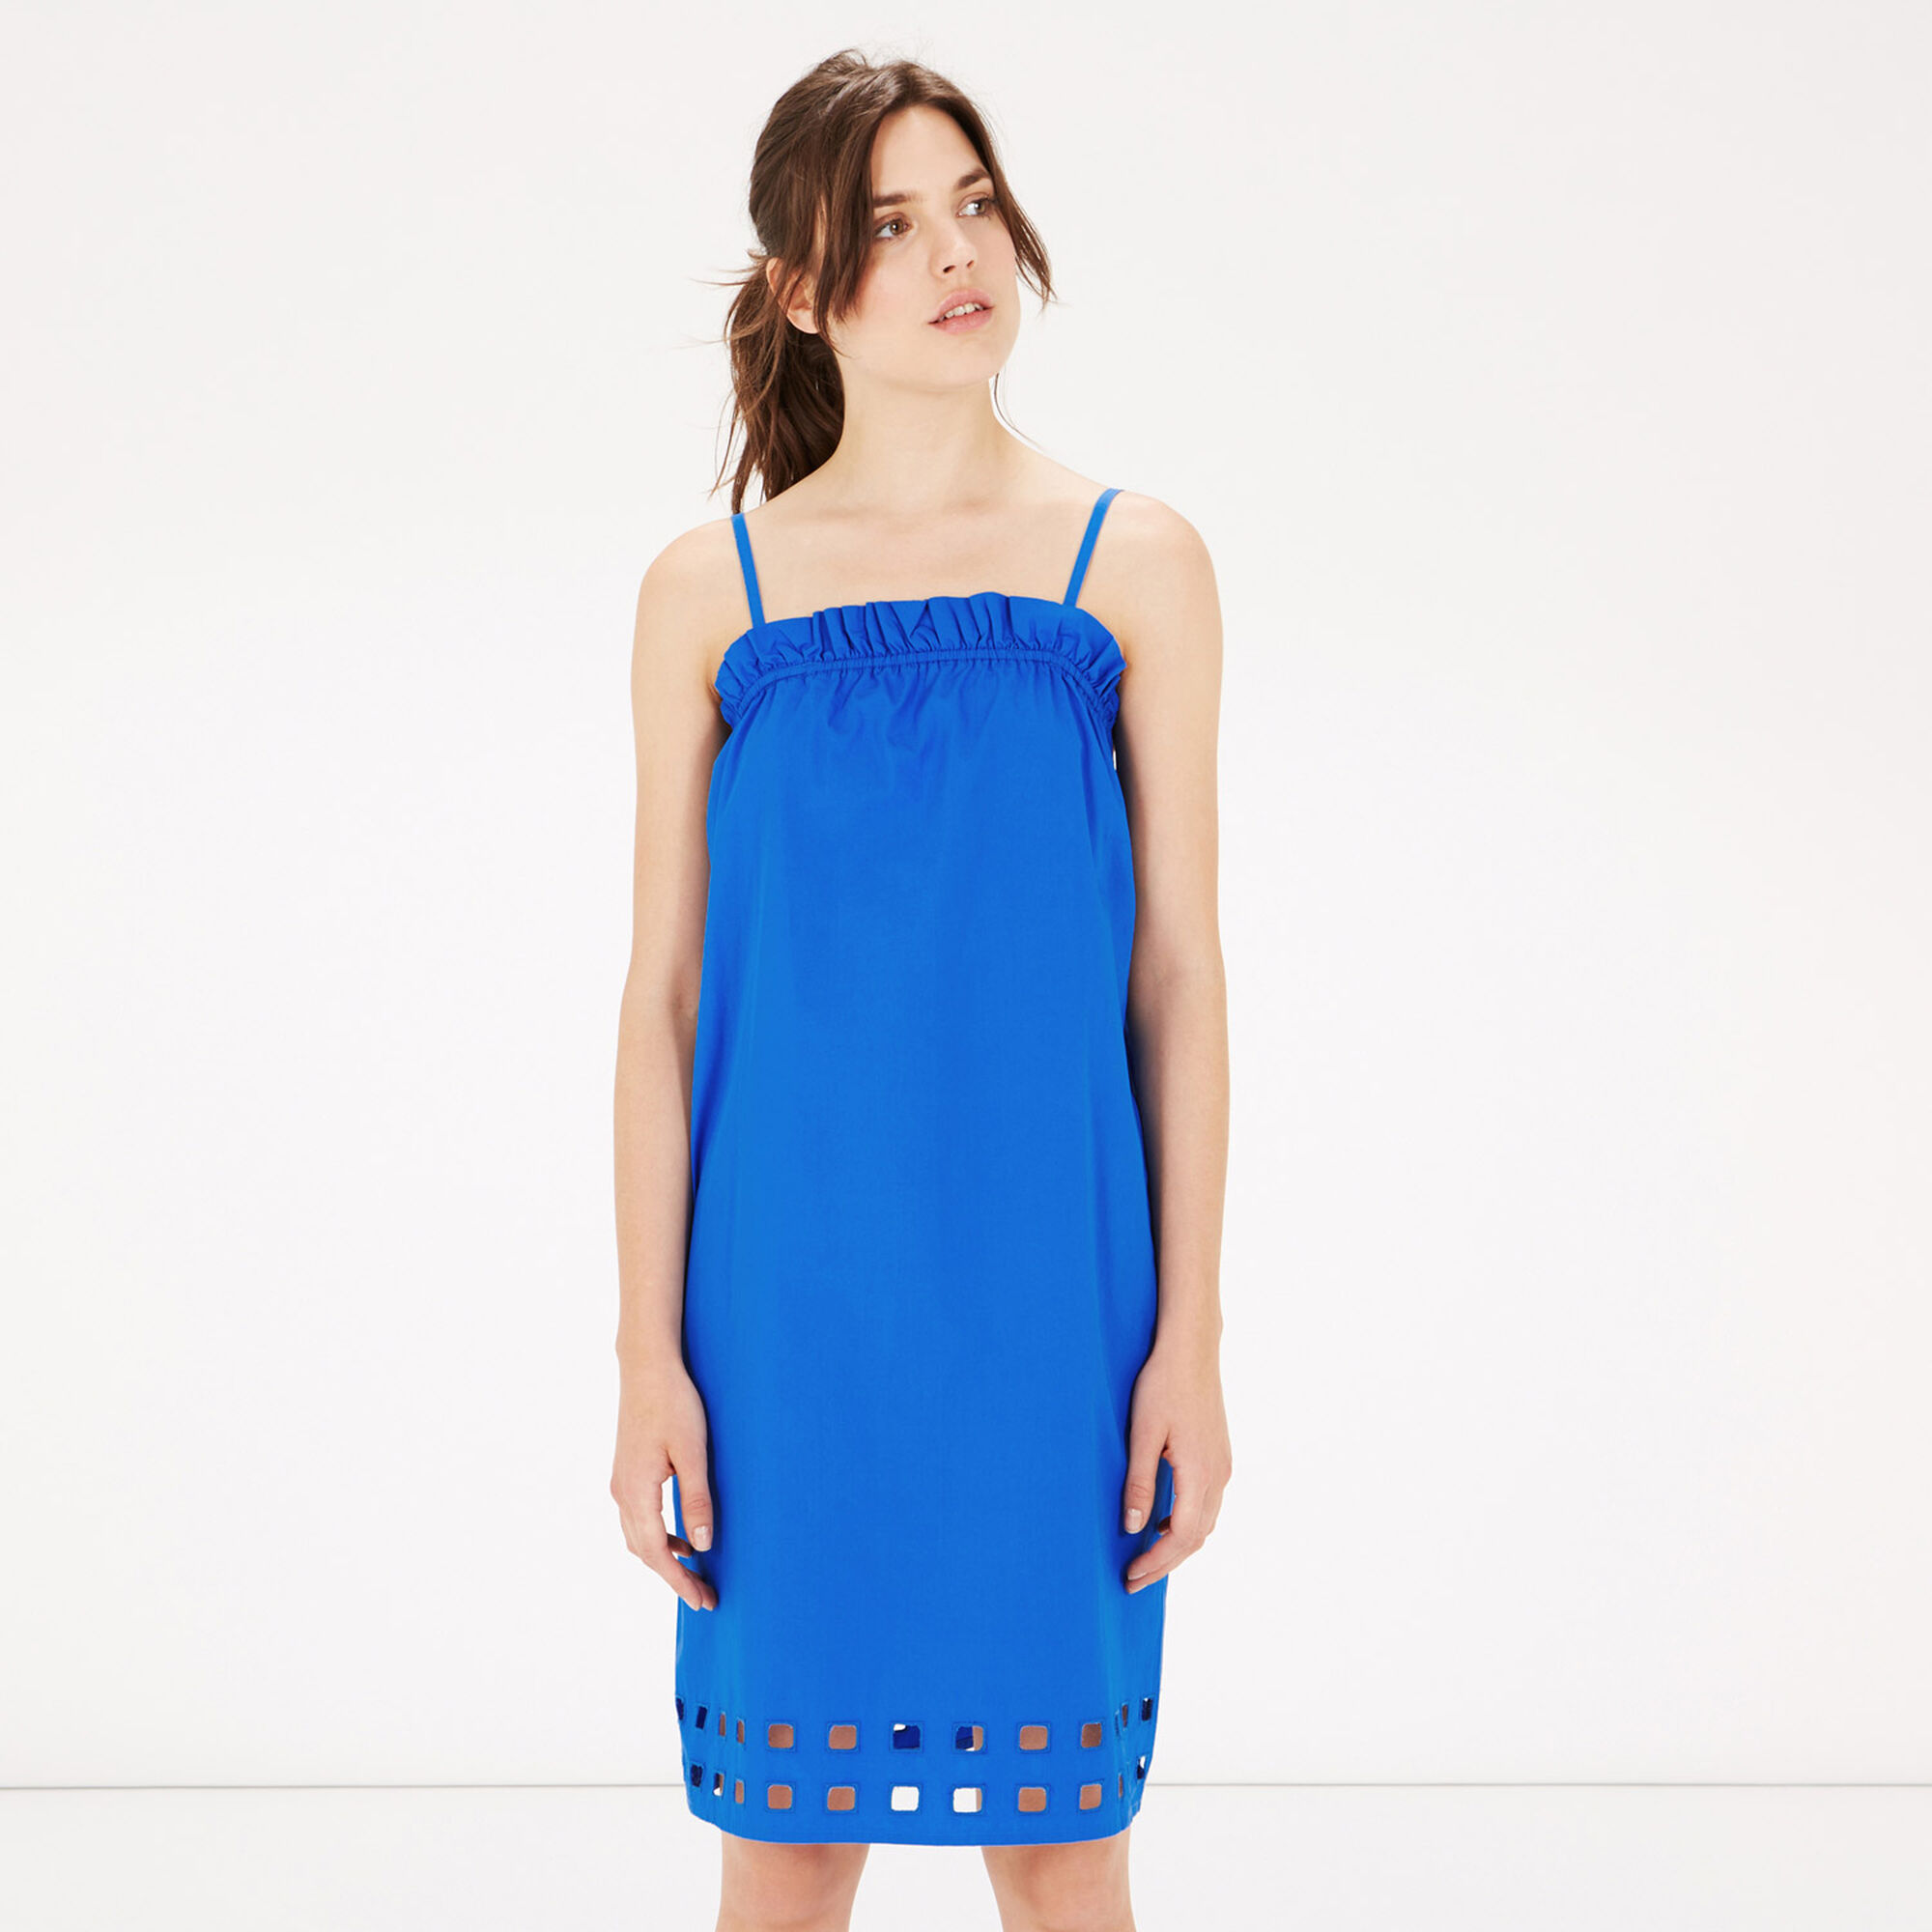 Warehouse, Square Cutwork Cami Dress Bright Blue 1